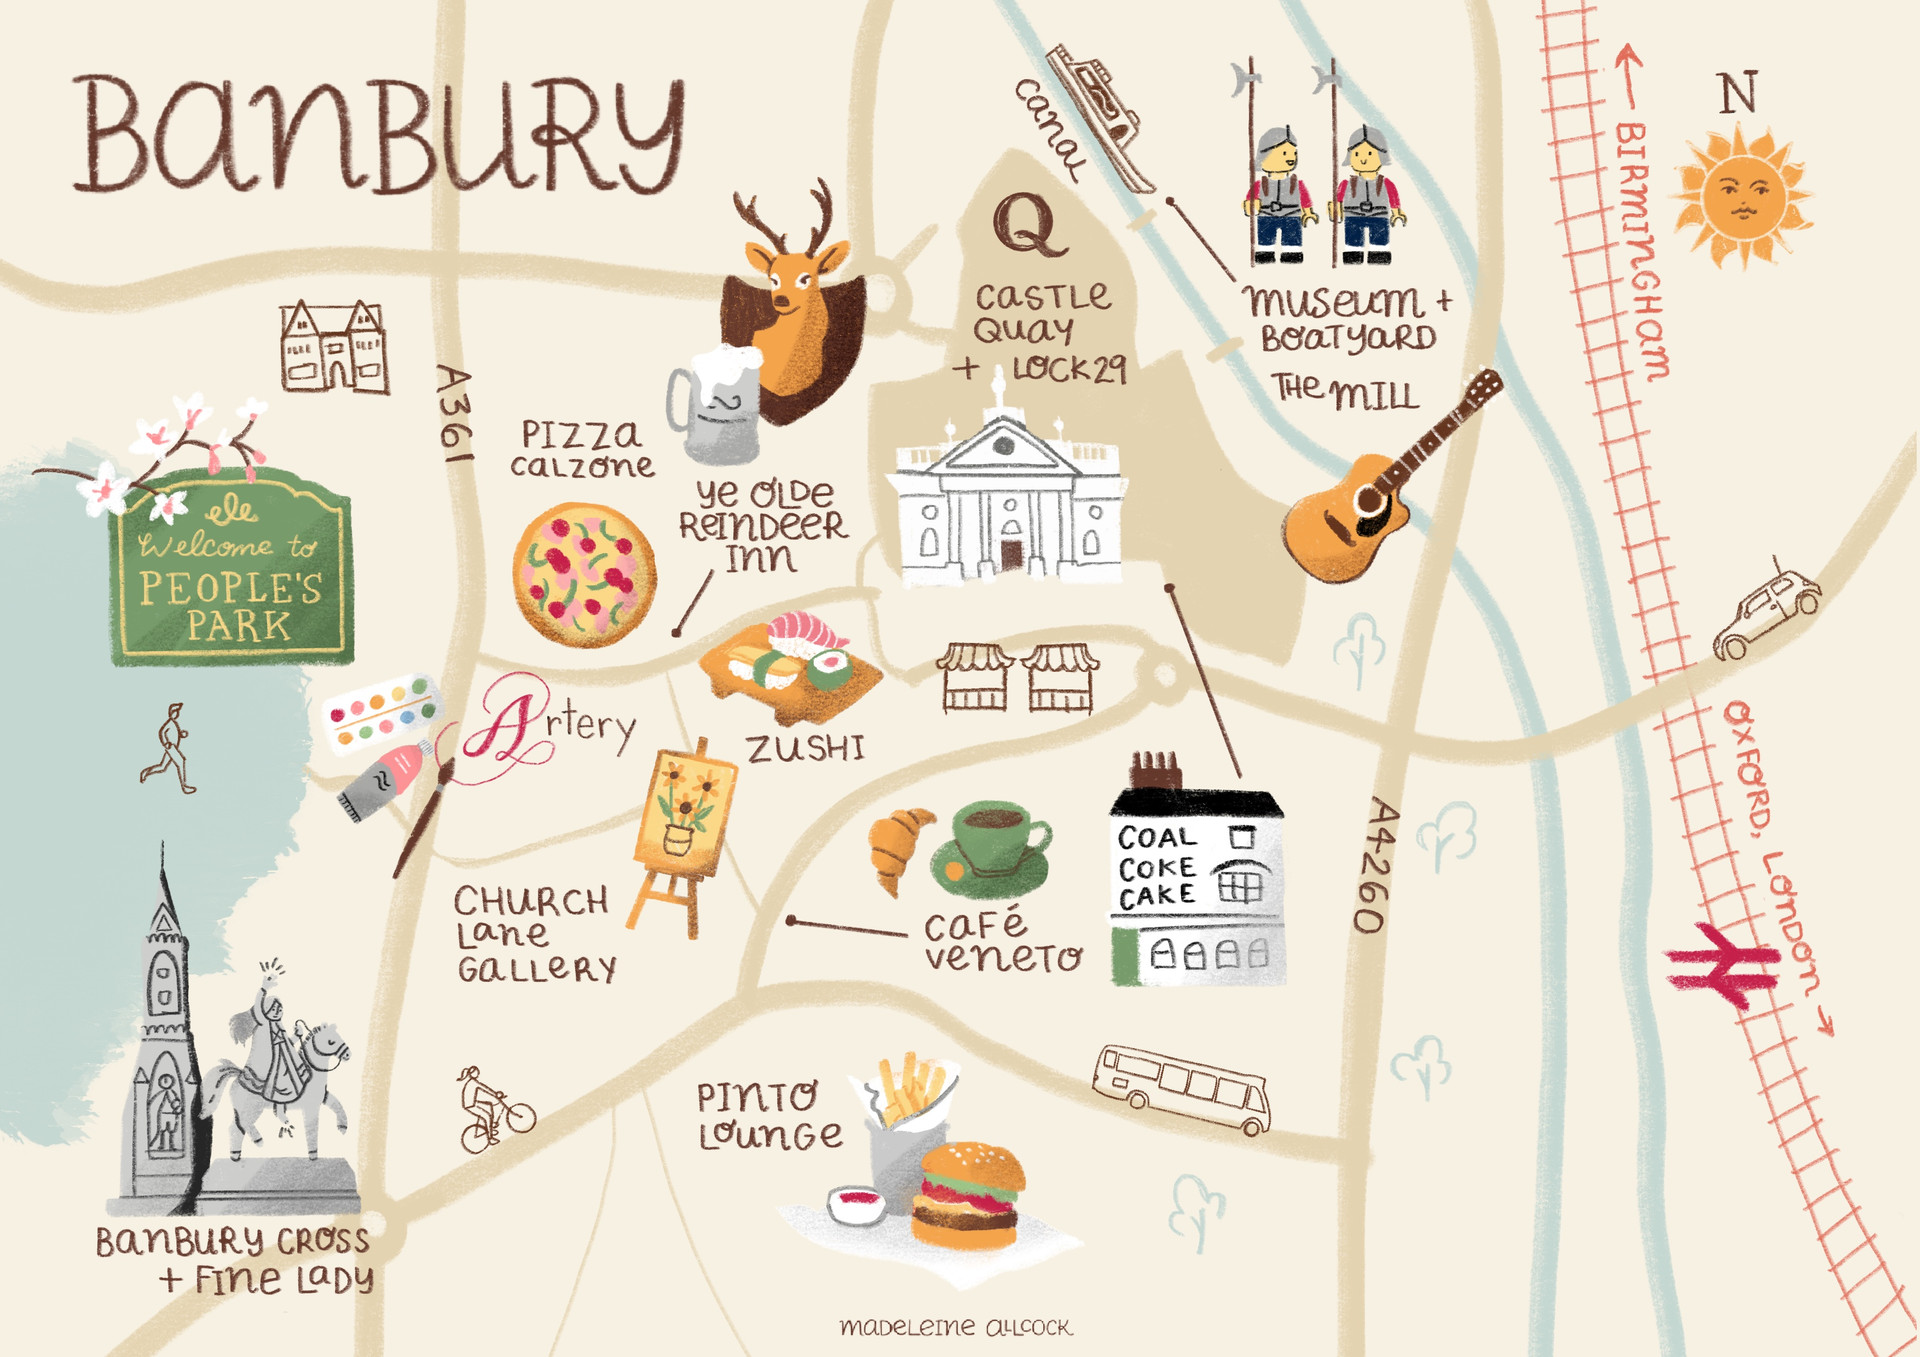 Putting Banbury on the map